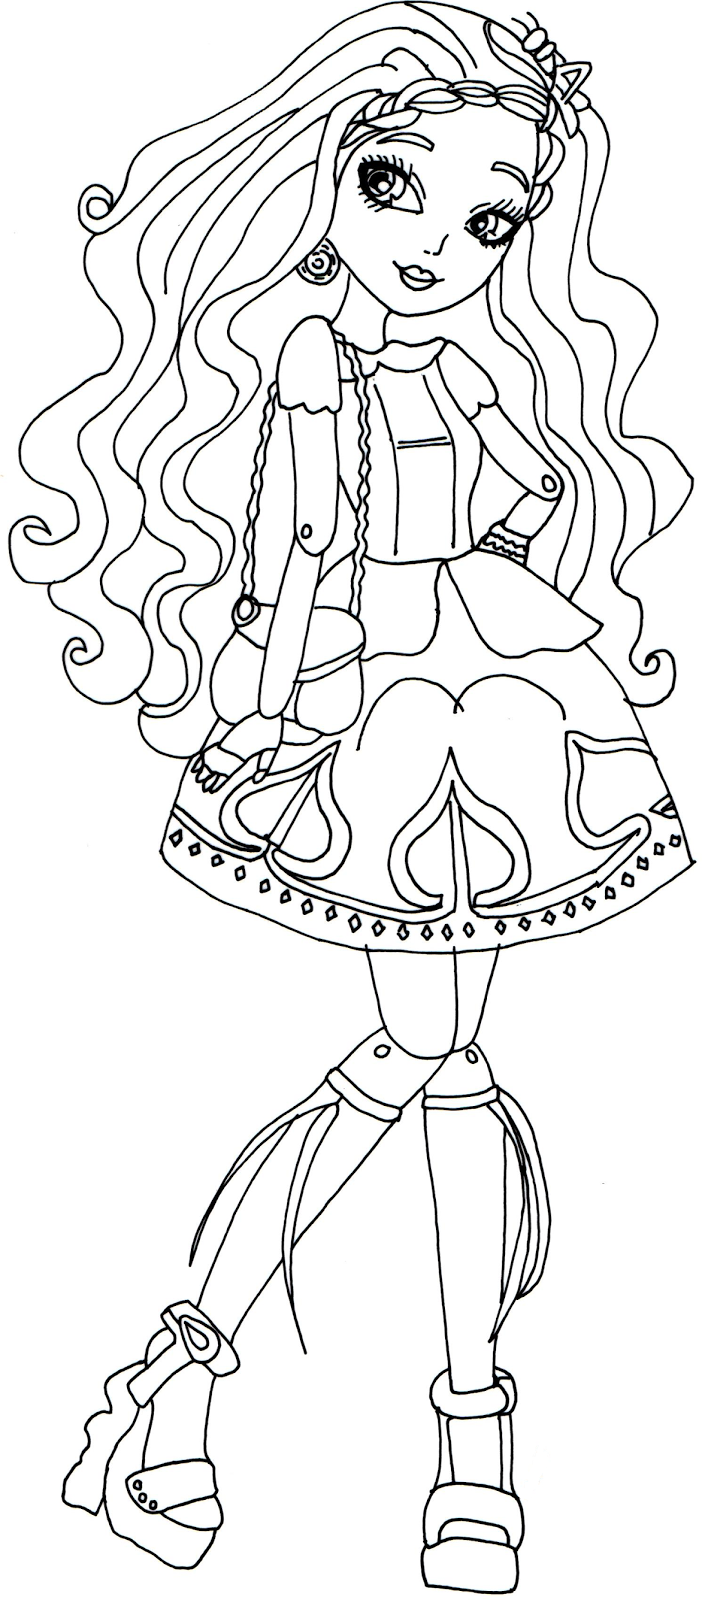 Cedar Wood Ever After High Coloring Page Desenhos Para Pintar